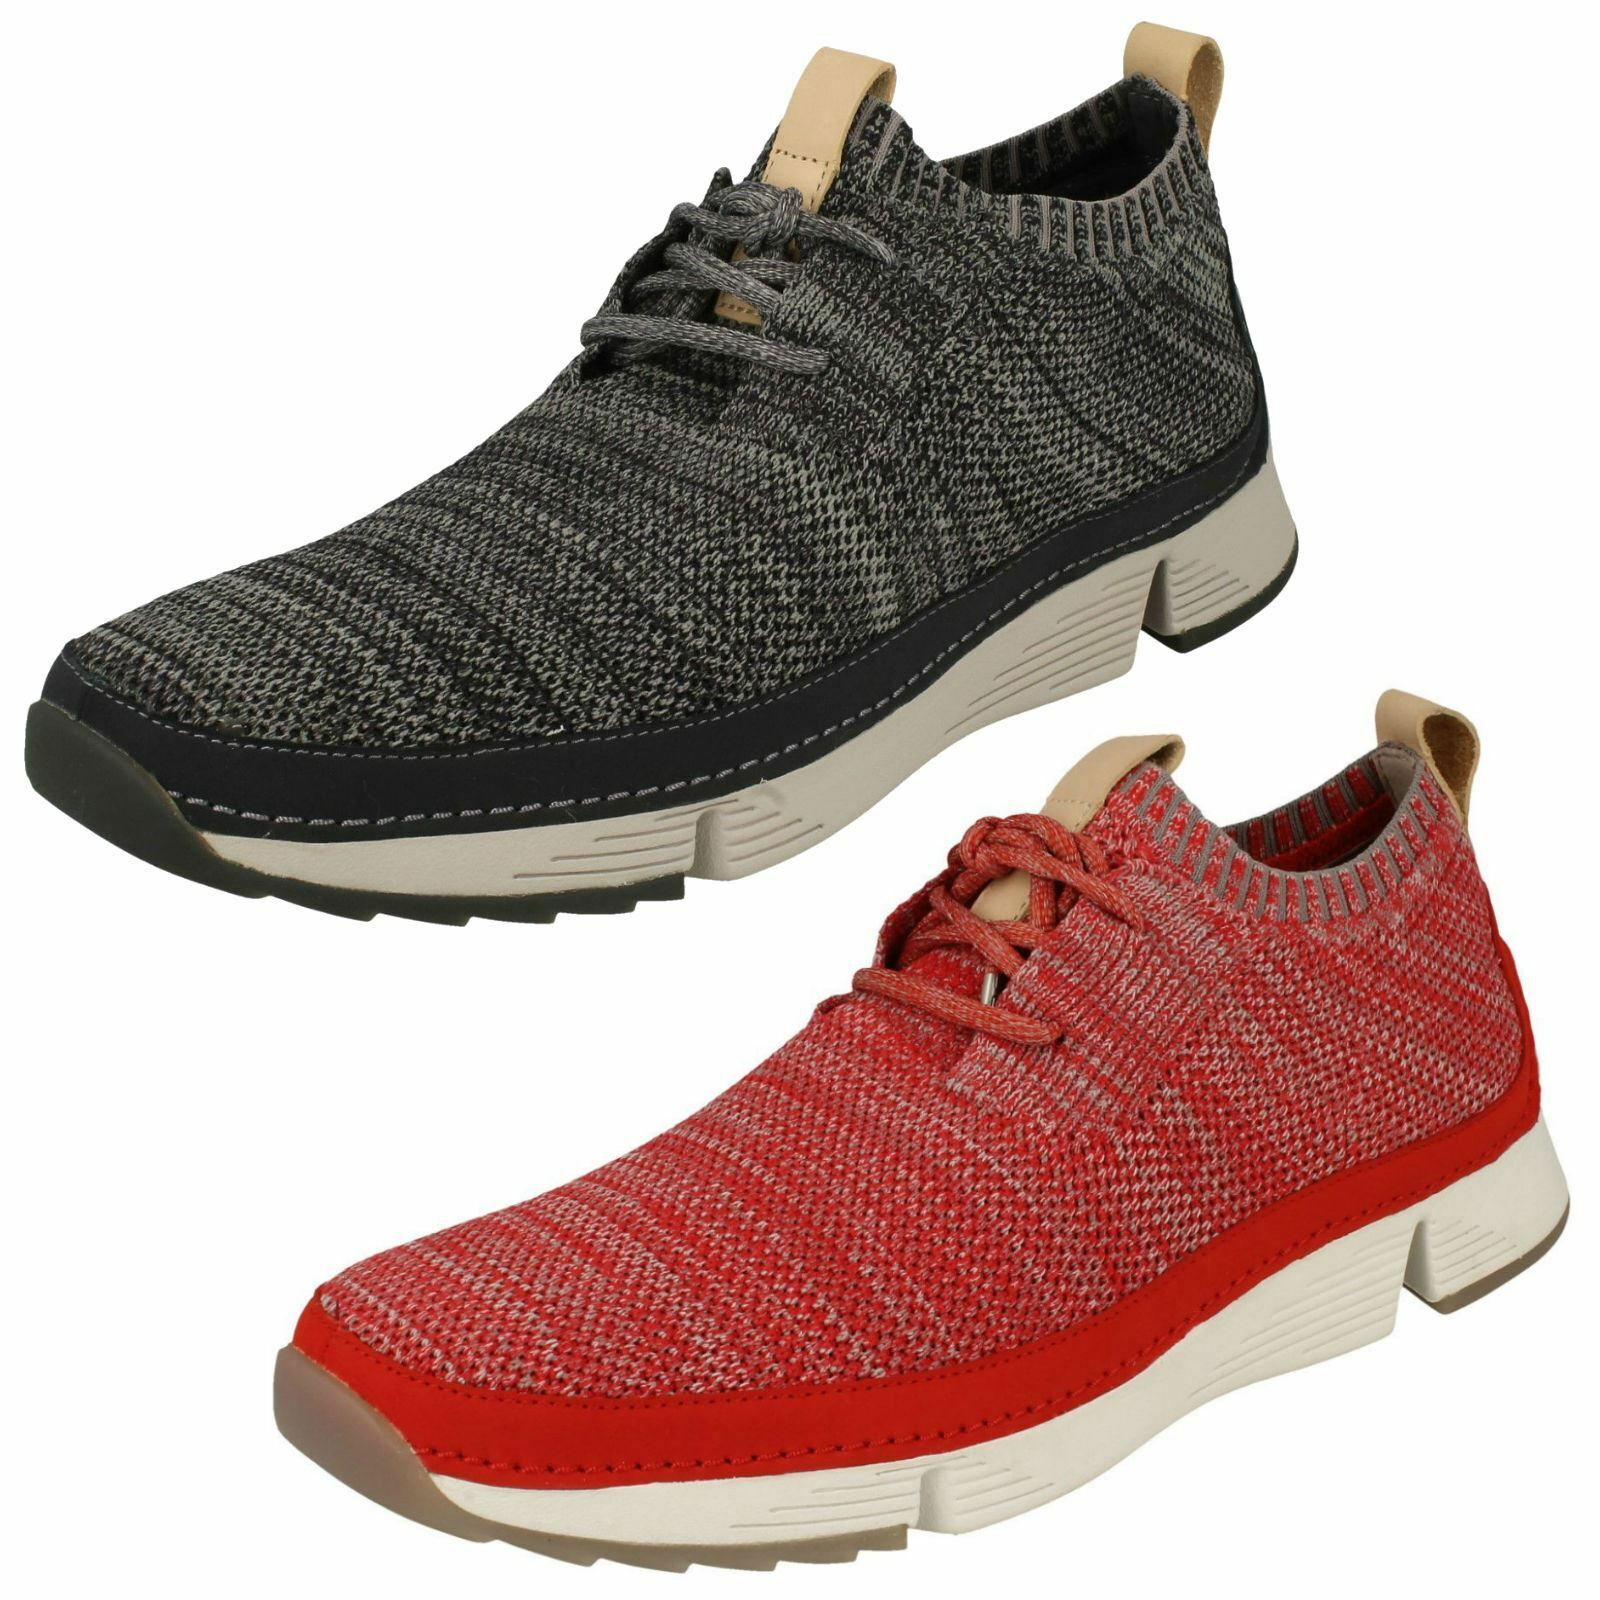 Clarks Mens Casual Lace Up Trainers 'Tri Native'